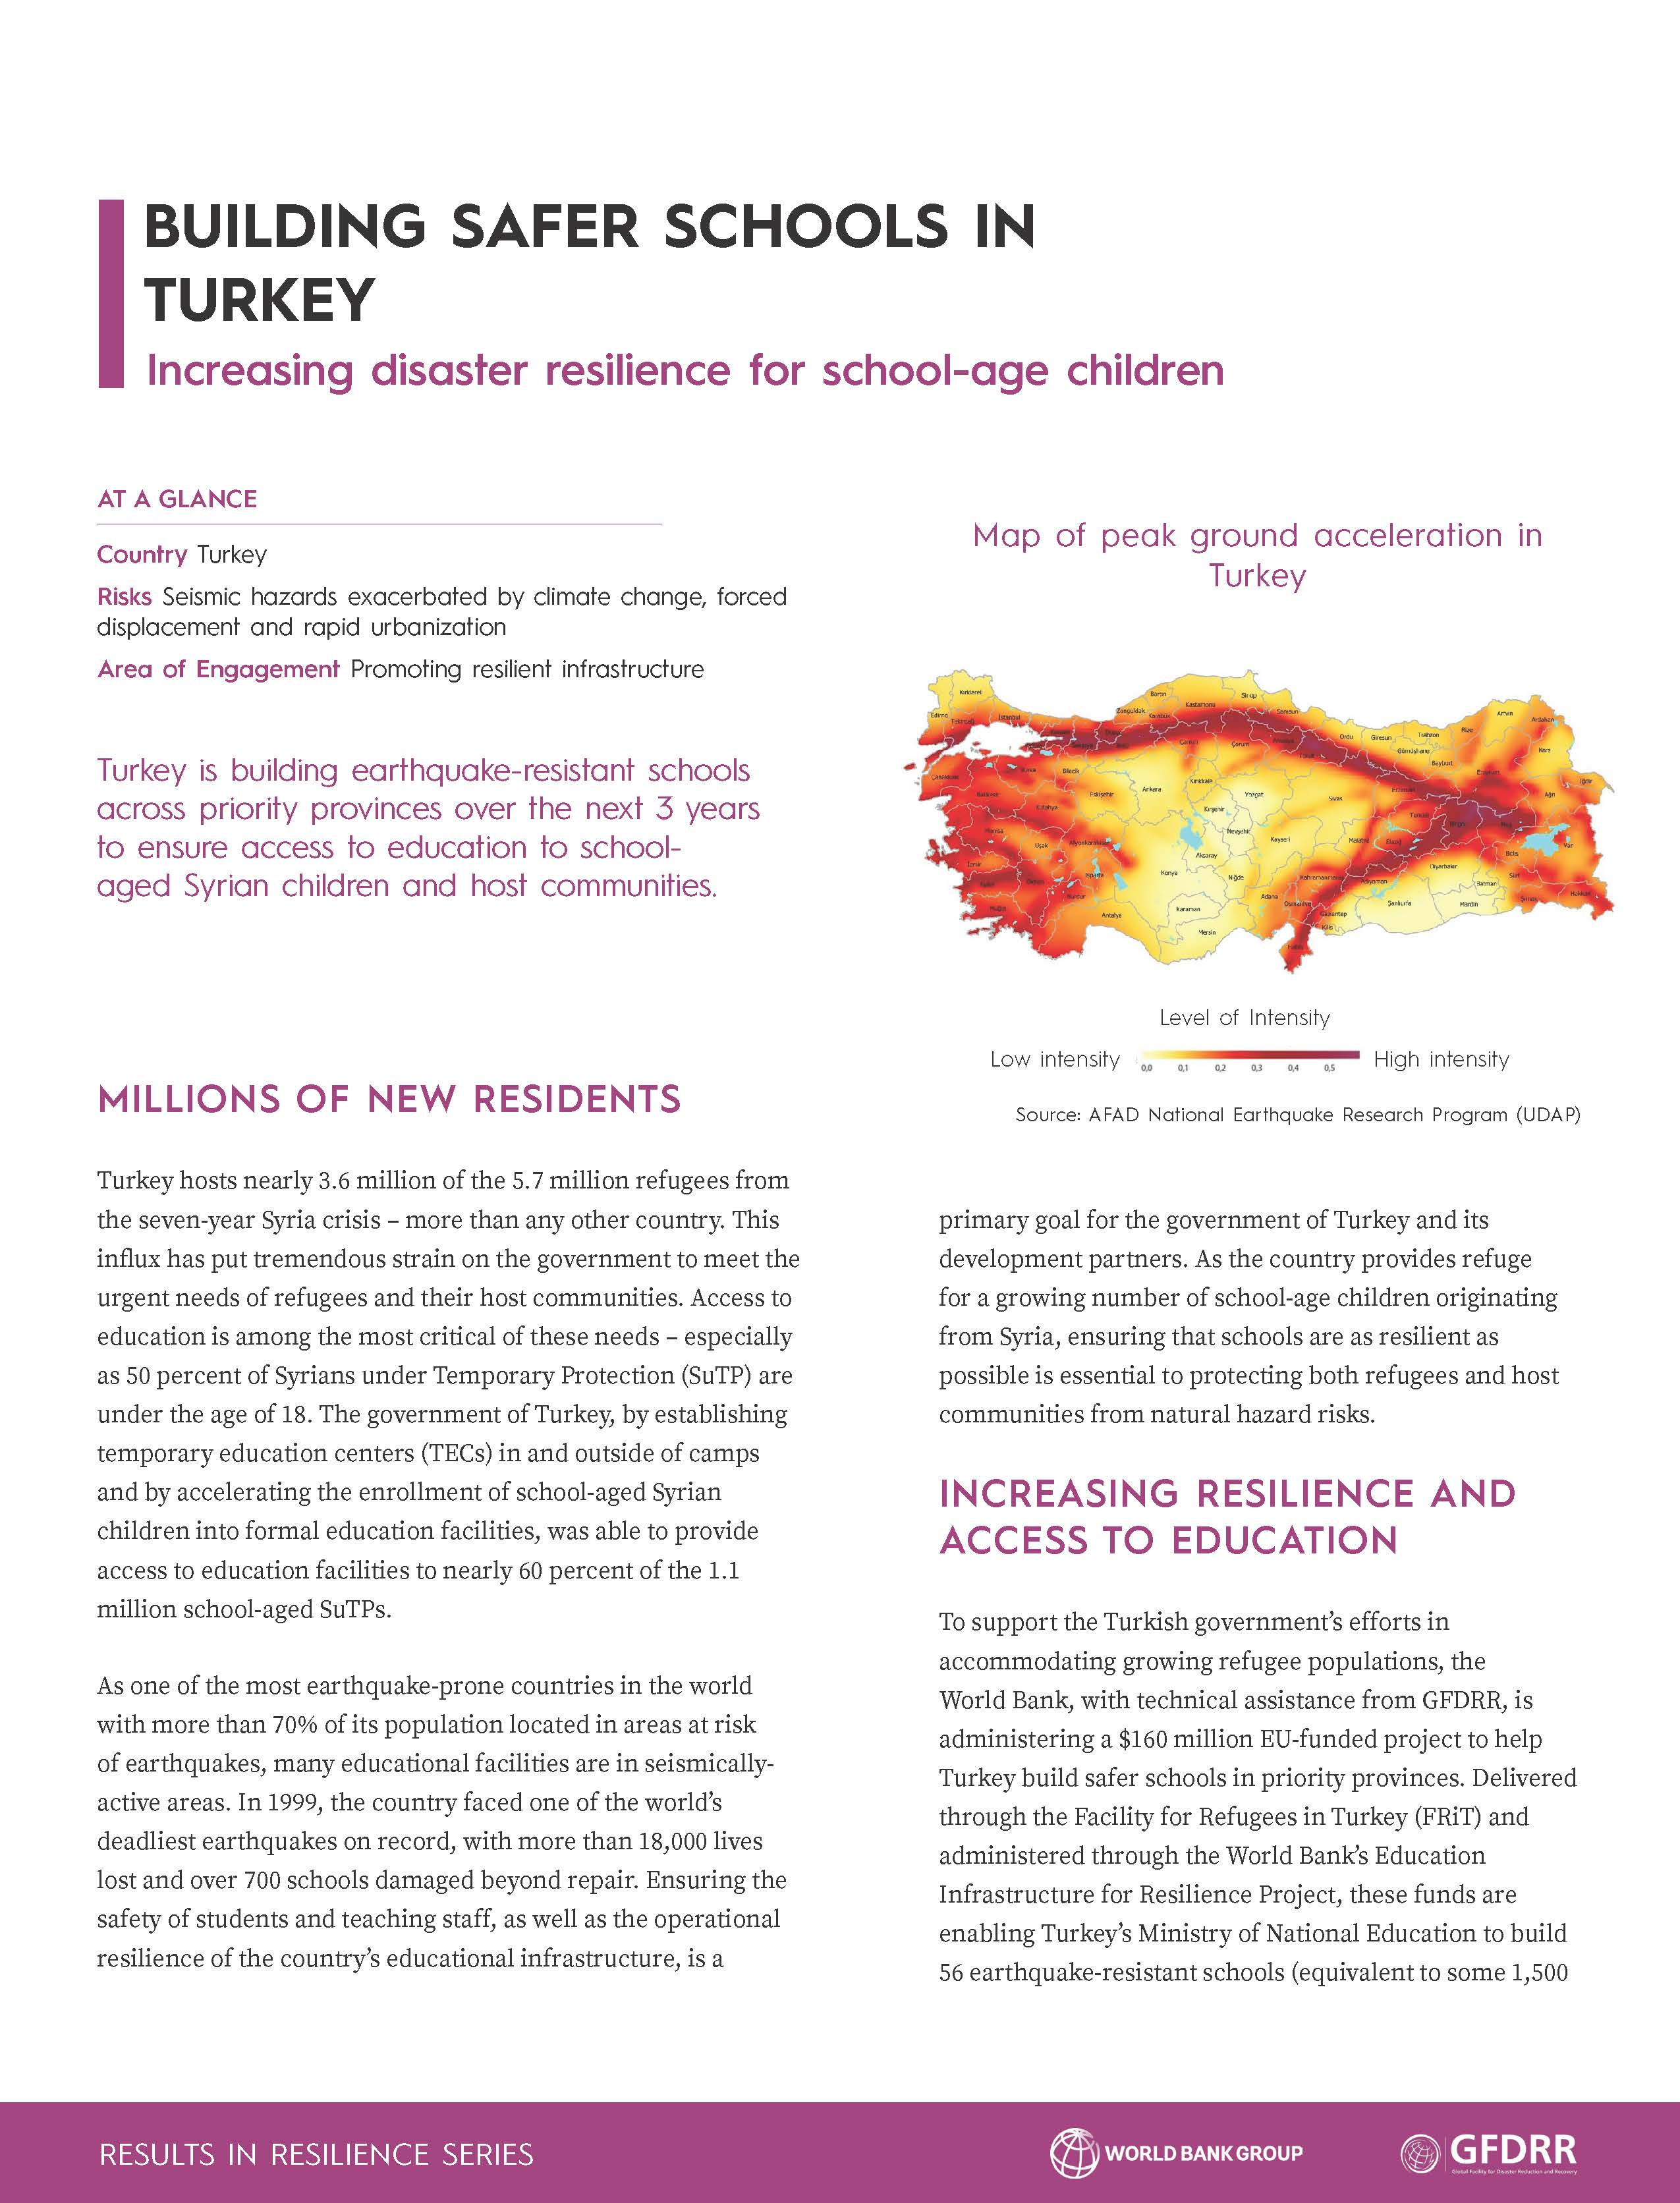 Results in Resilience: Building Safer Schools in Turkey